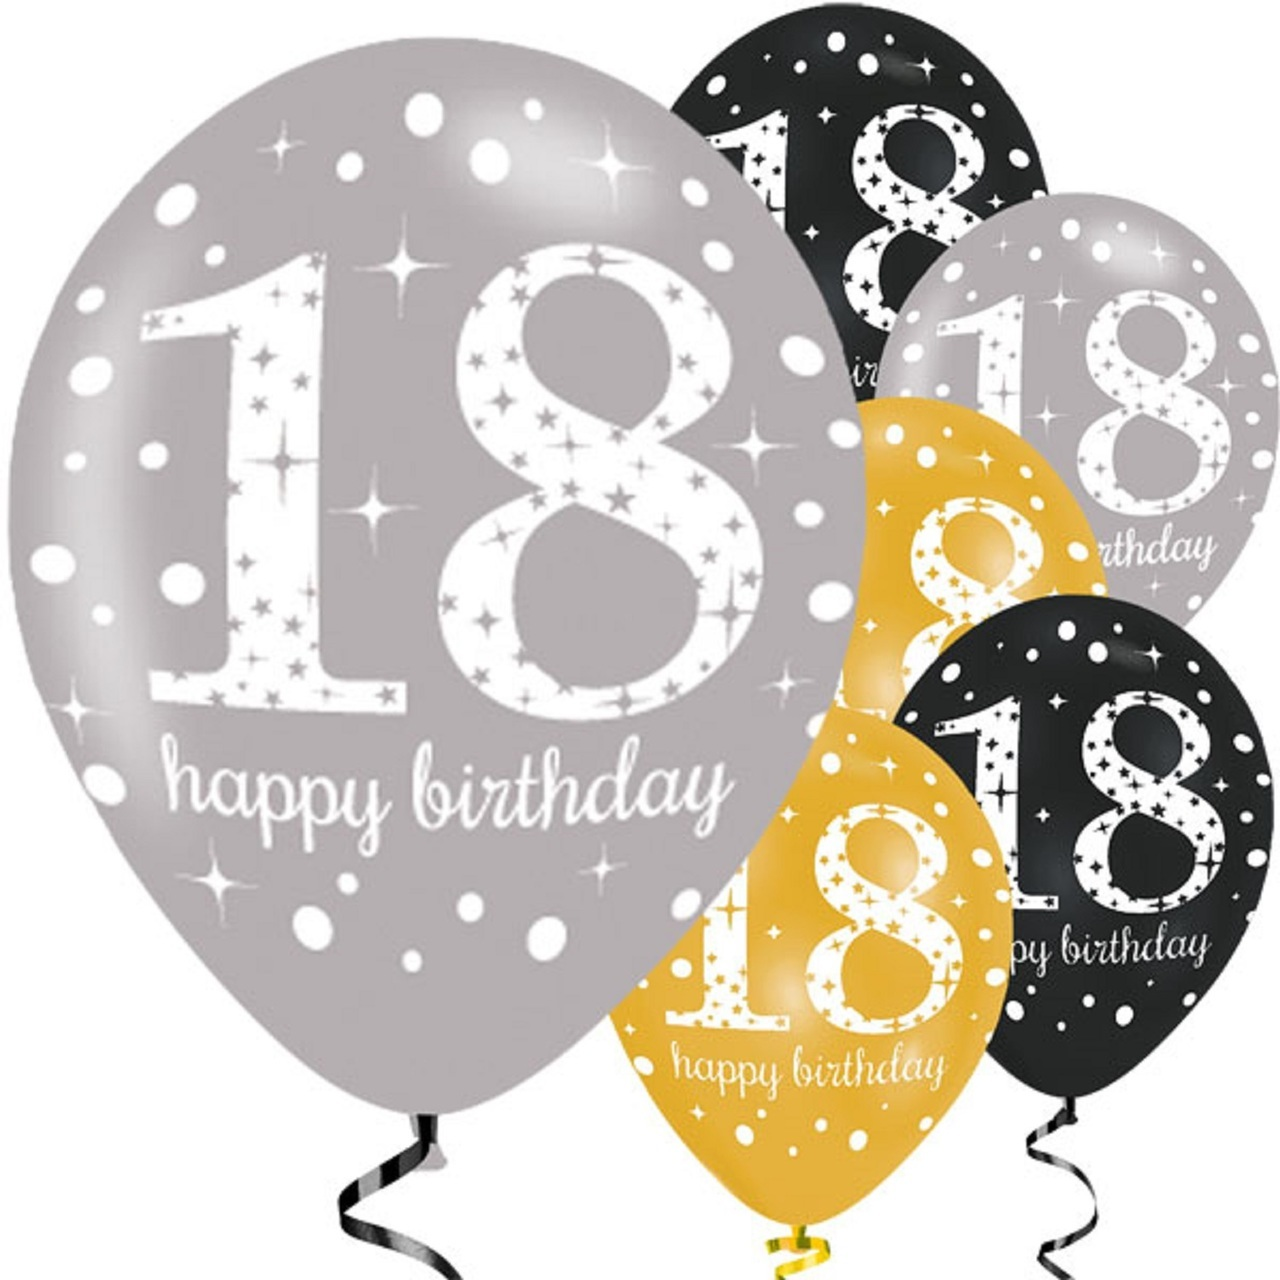 18th birthday clipart 7 » Clipart Station.